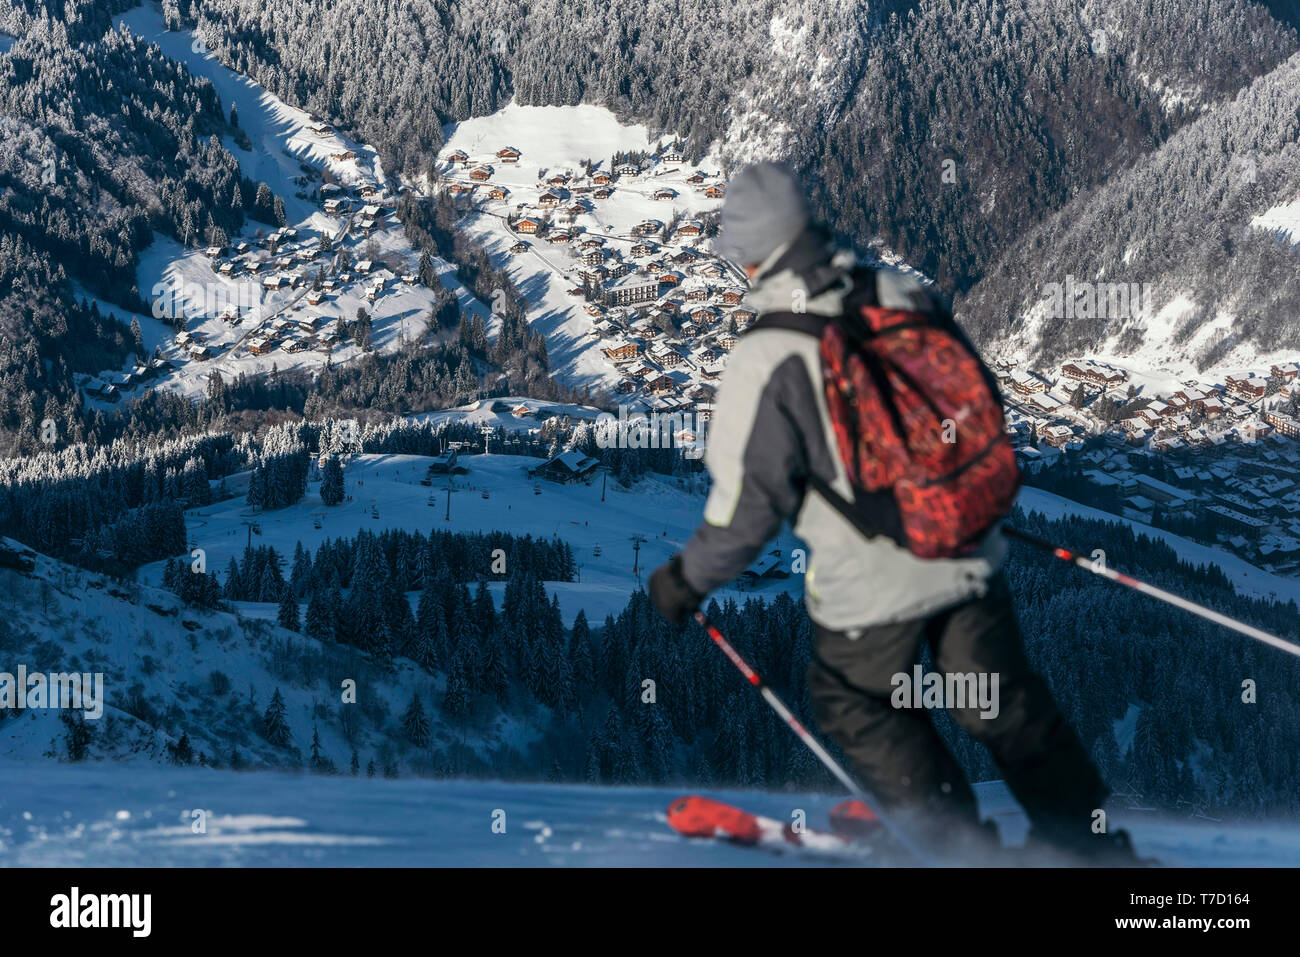 La Clusaz (eastern France): the village covered in snow viewed from the upper ski resort and back view of a skier - Stock Image